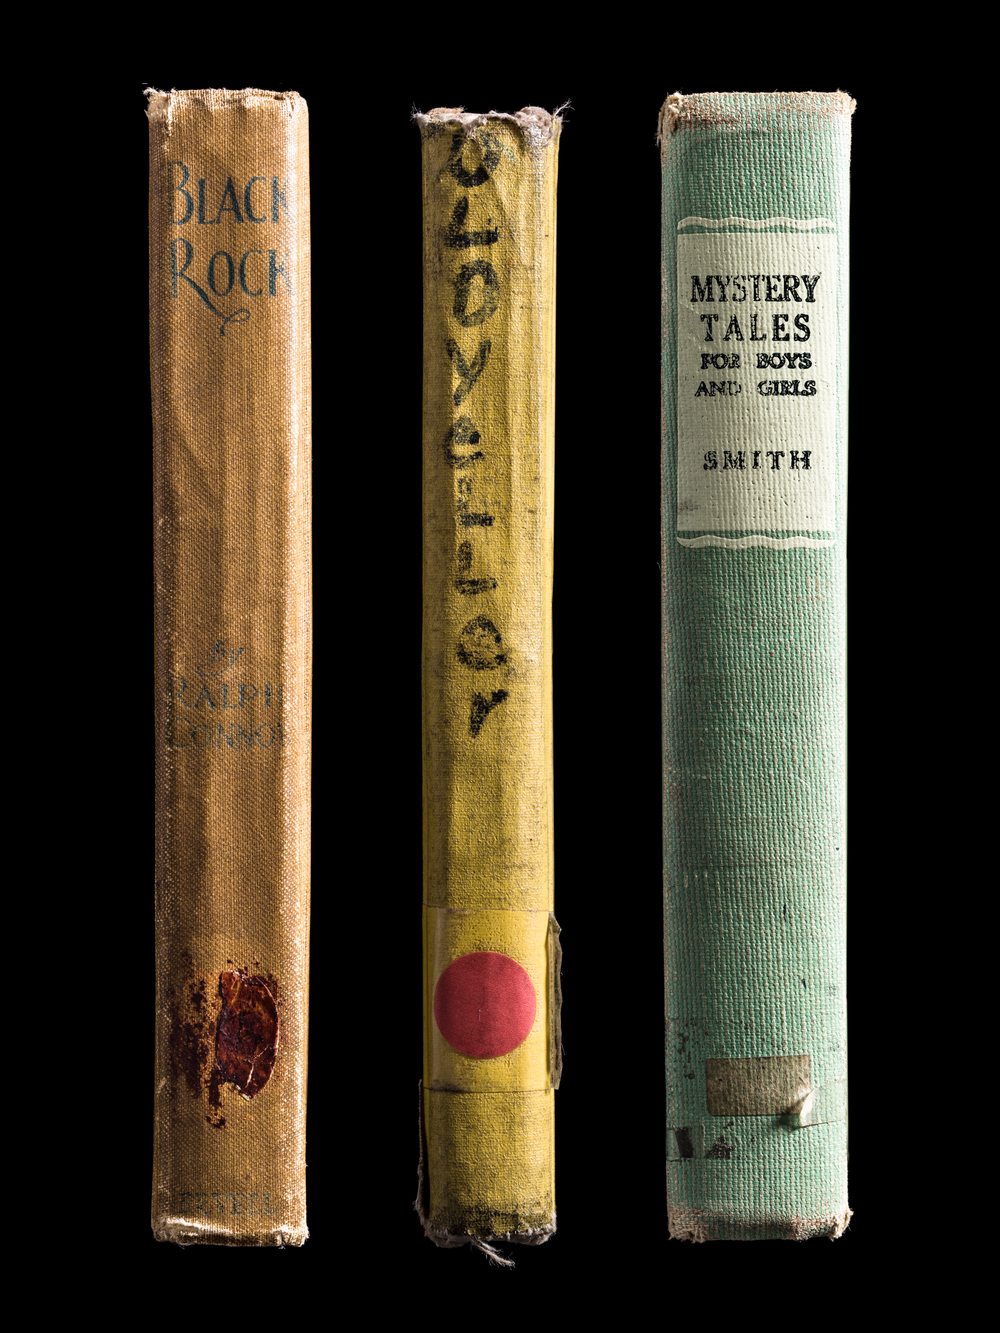 Mansfield_Expired_Spines_04.jpg